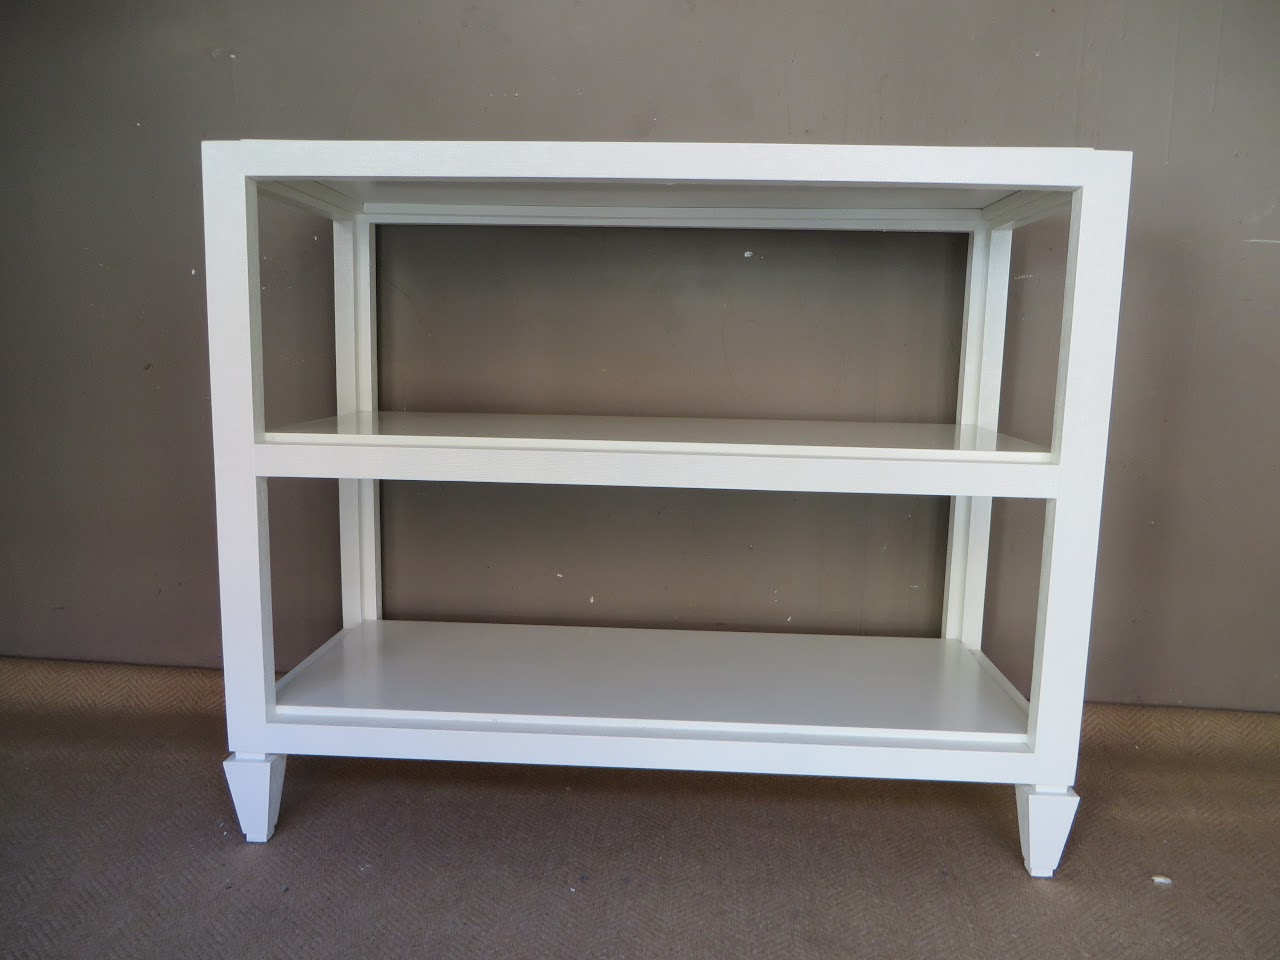 Seagrass Shelving